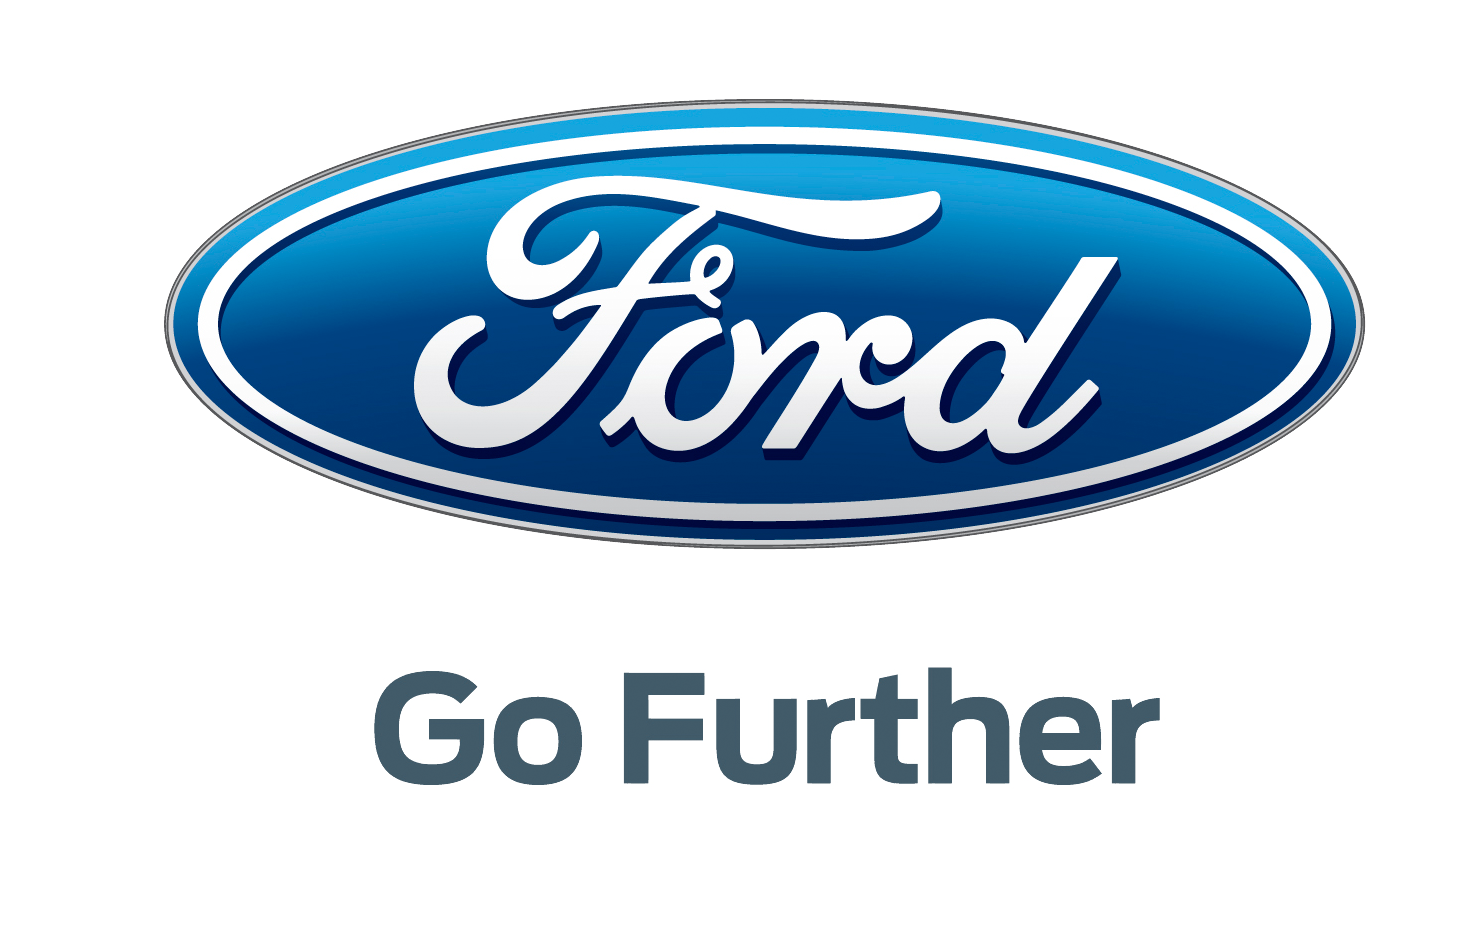 Ford Go Further Logo Transparent Png Clipart Free Download Ya